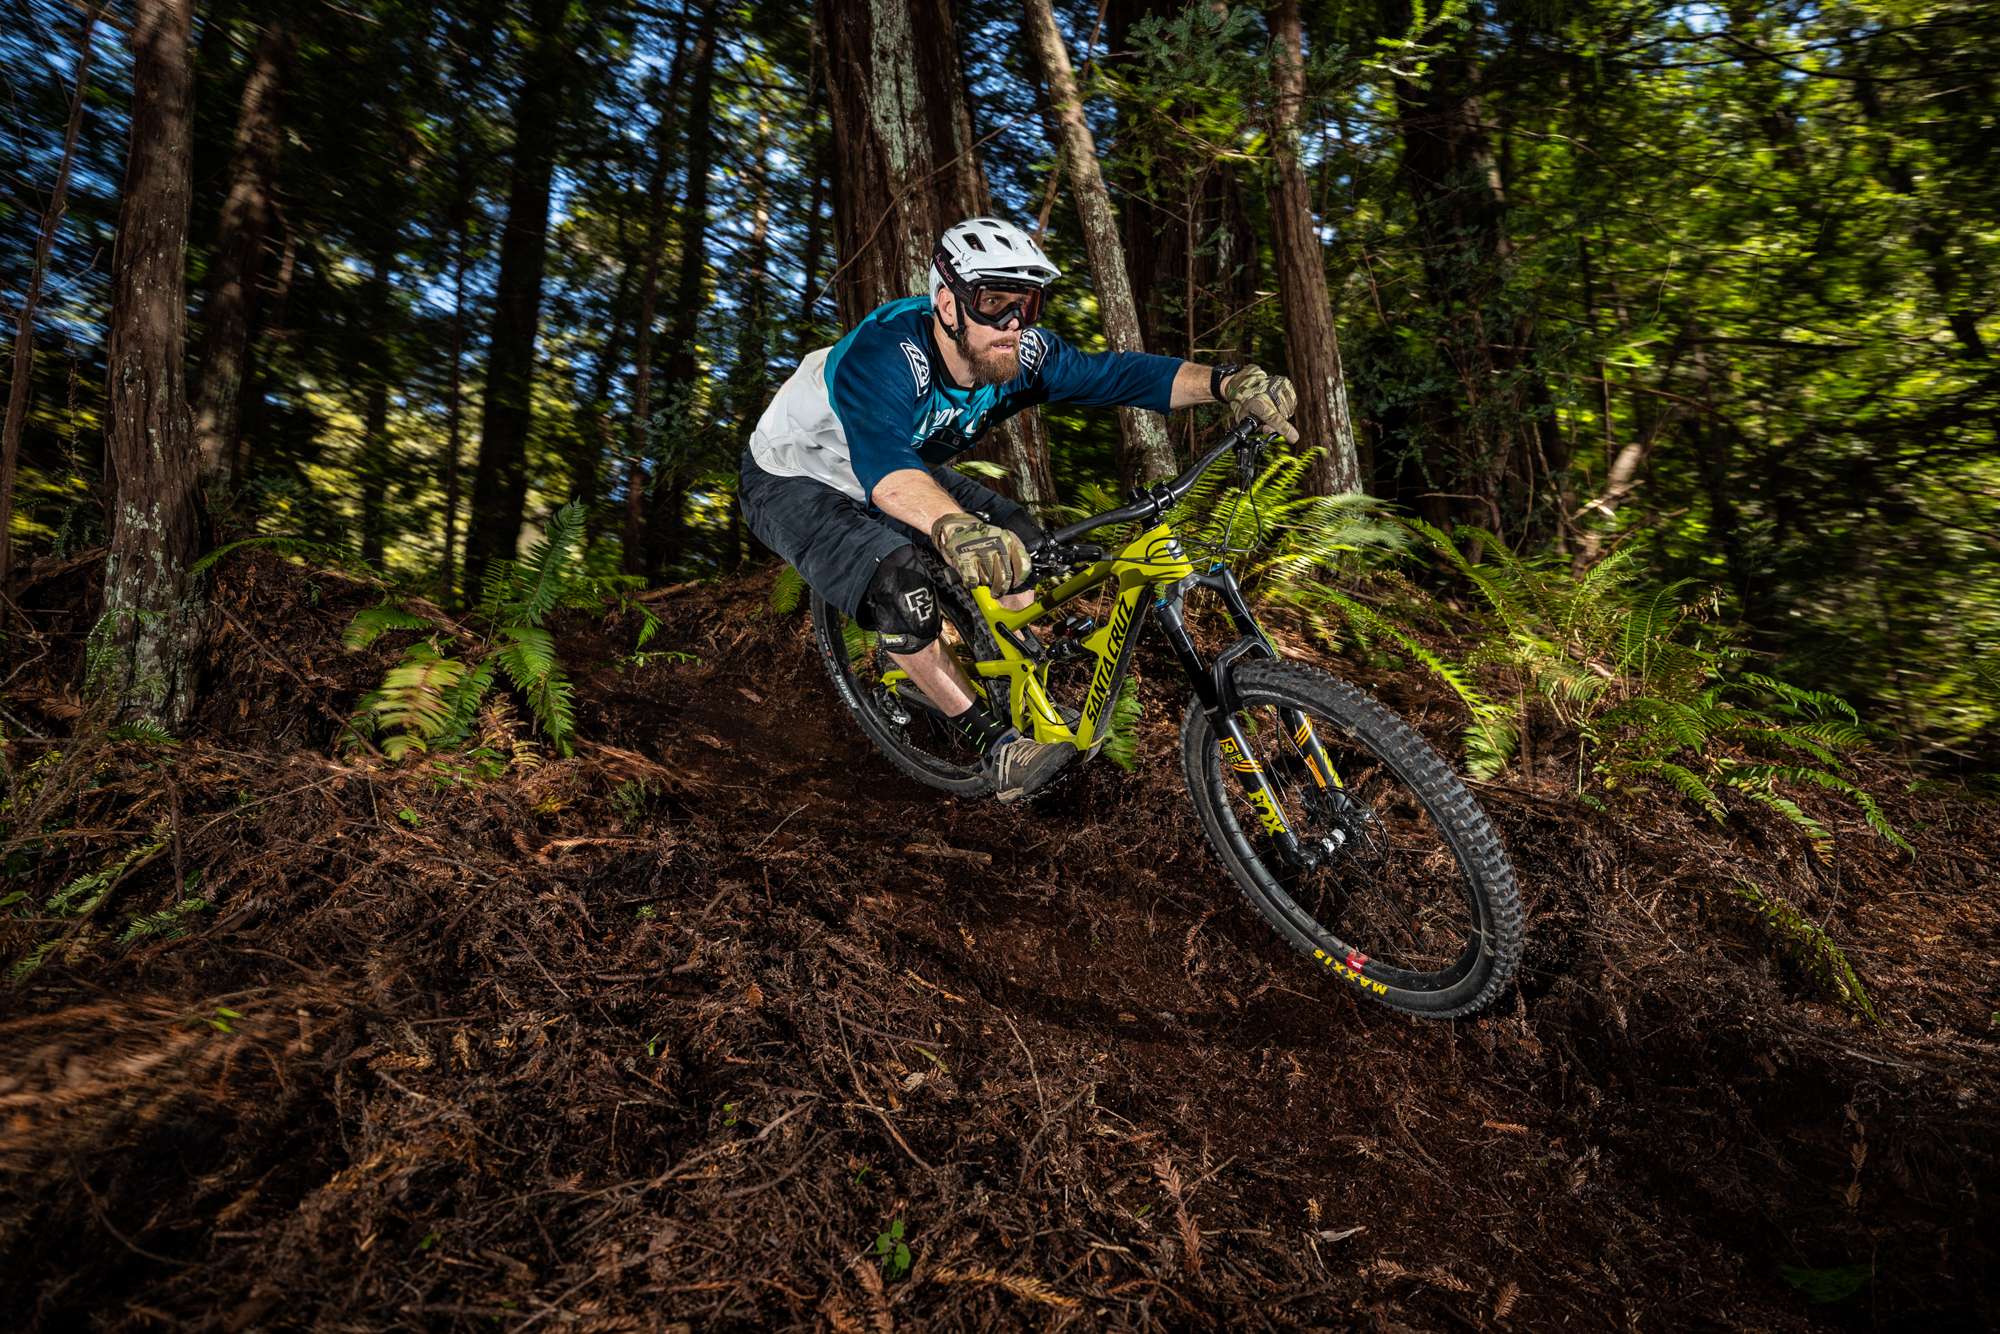 Dropping into the loam, where the Assegai roam - All photos by: Forrest Arakawa and Maxxis